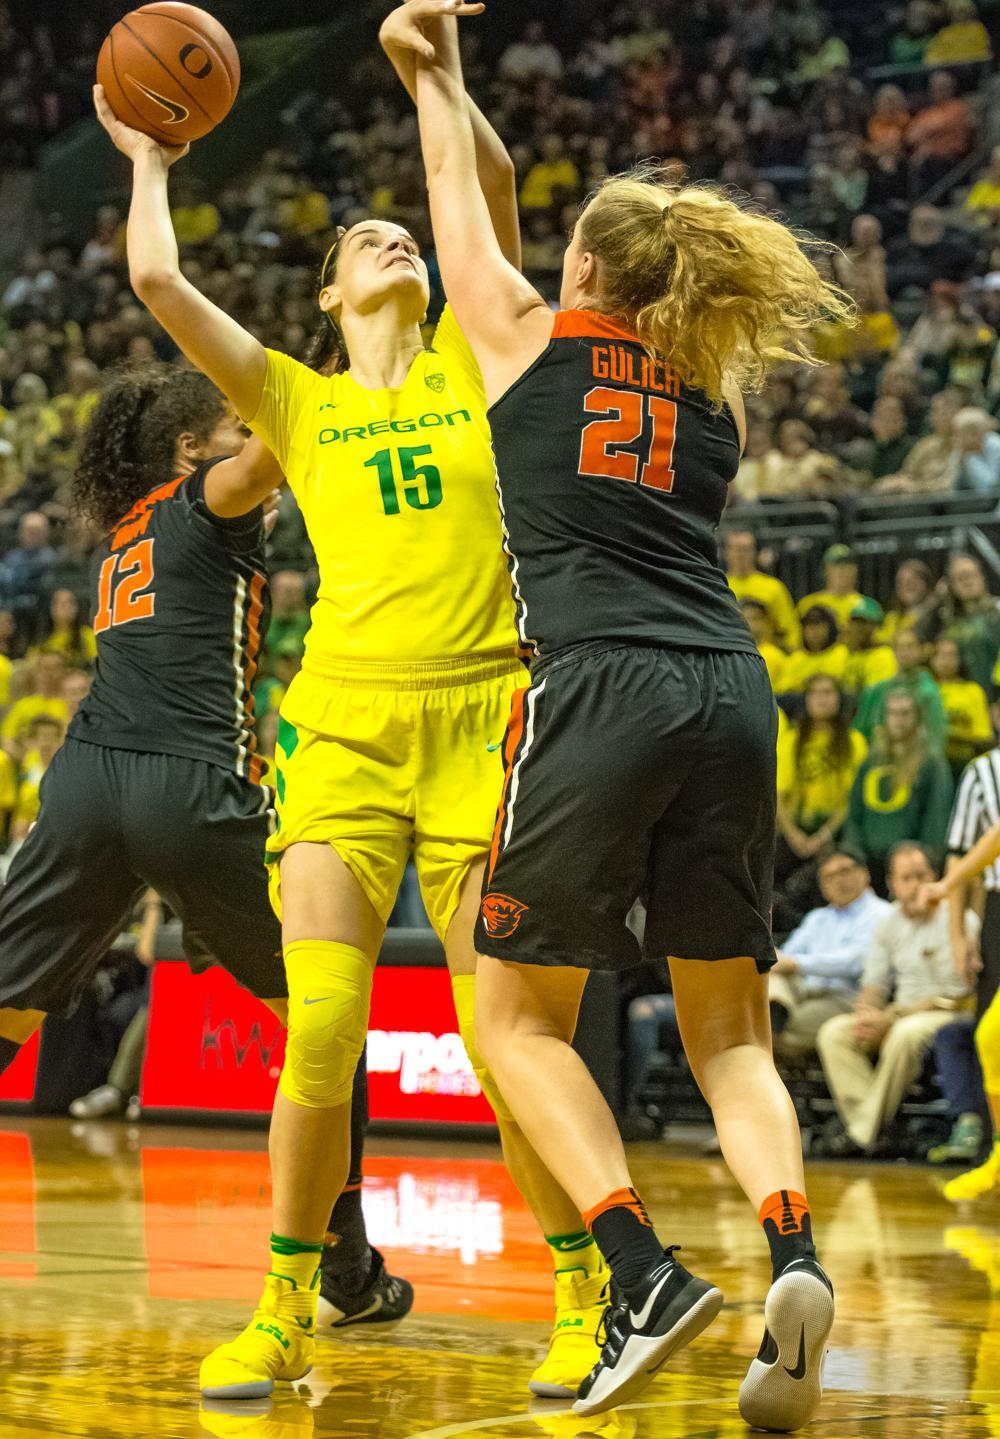 Oregon Ducks Forward Jacinta Vadenberg (#15) shoots over Oregon State Center Marie Gulich (#21) for two points. Oregon Ducks lost 40-43 to Oregon State Beavers in a tightly matched fourth quarter. Photo by Jonathan Booker, Oregon News Lab